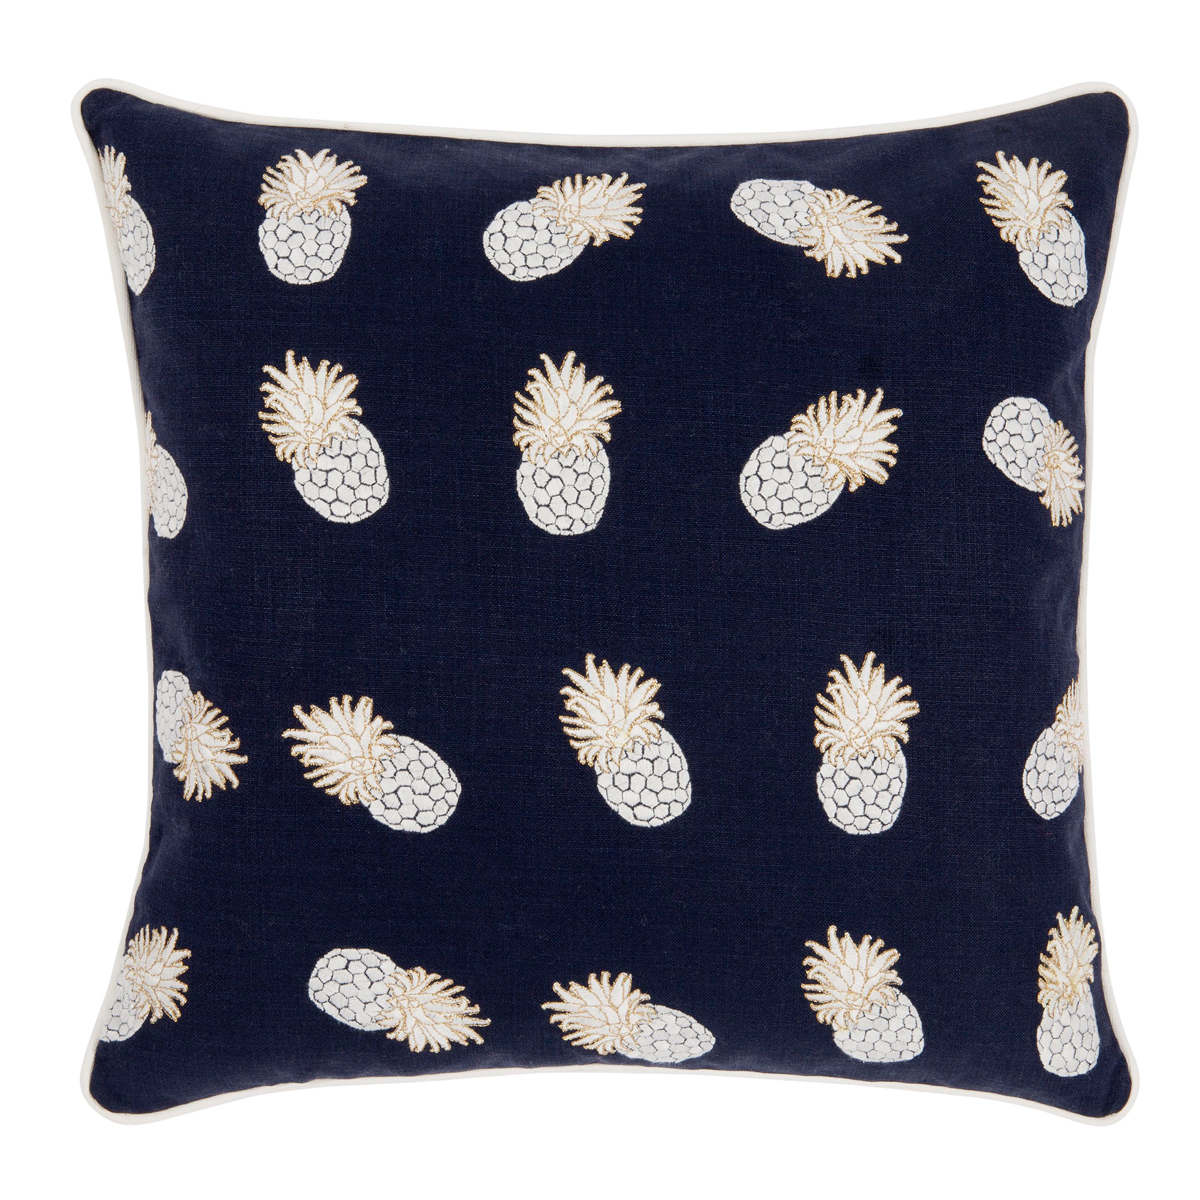 elizabeth-scarlett-navy-indigo-pineapple-cushion